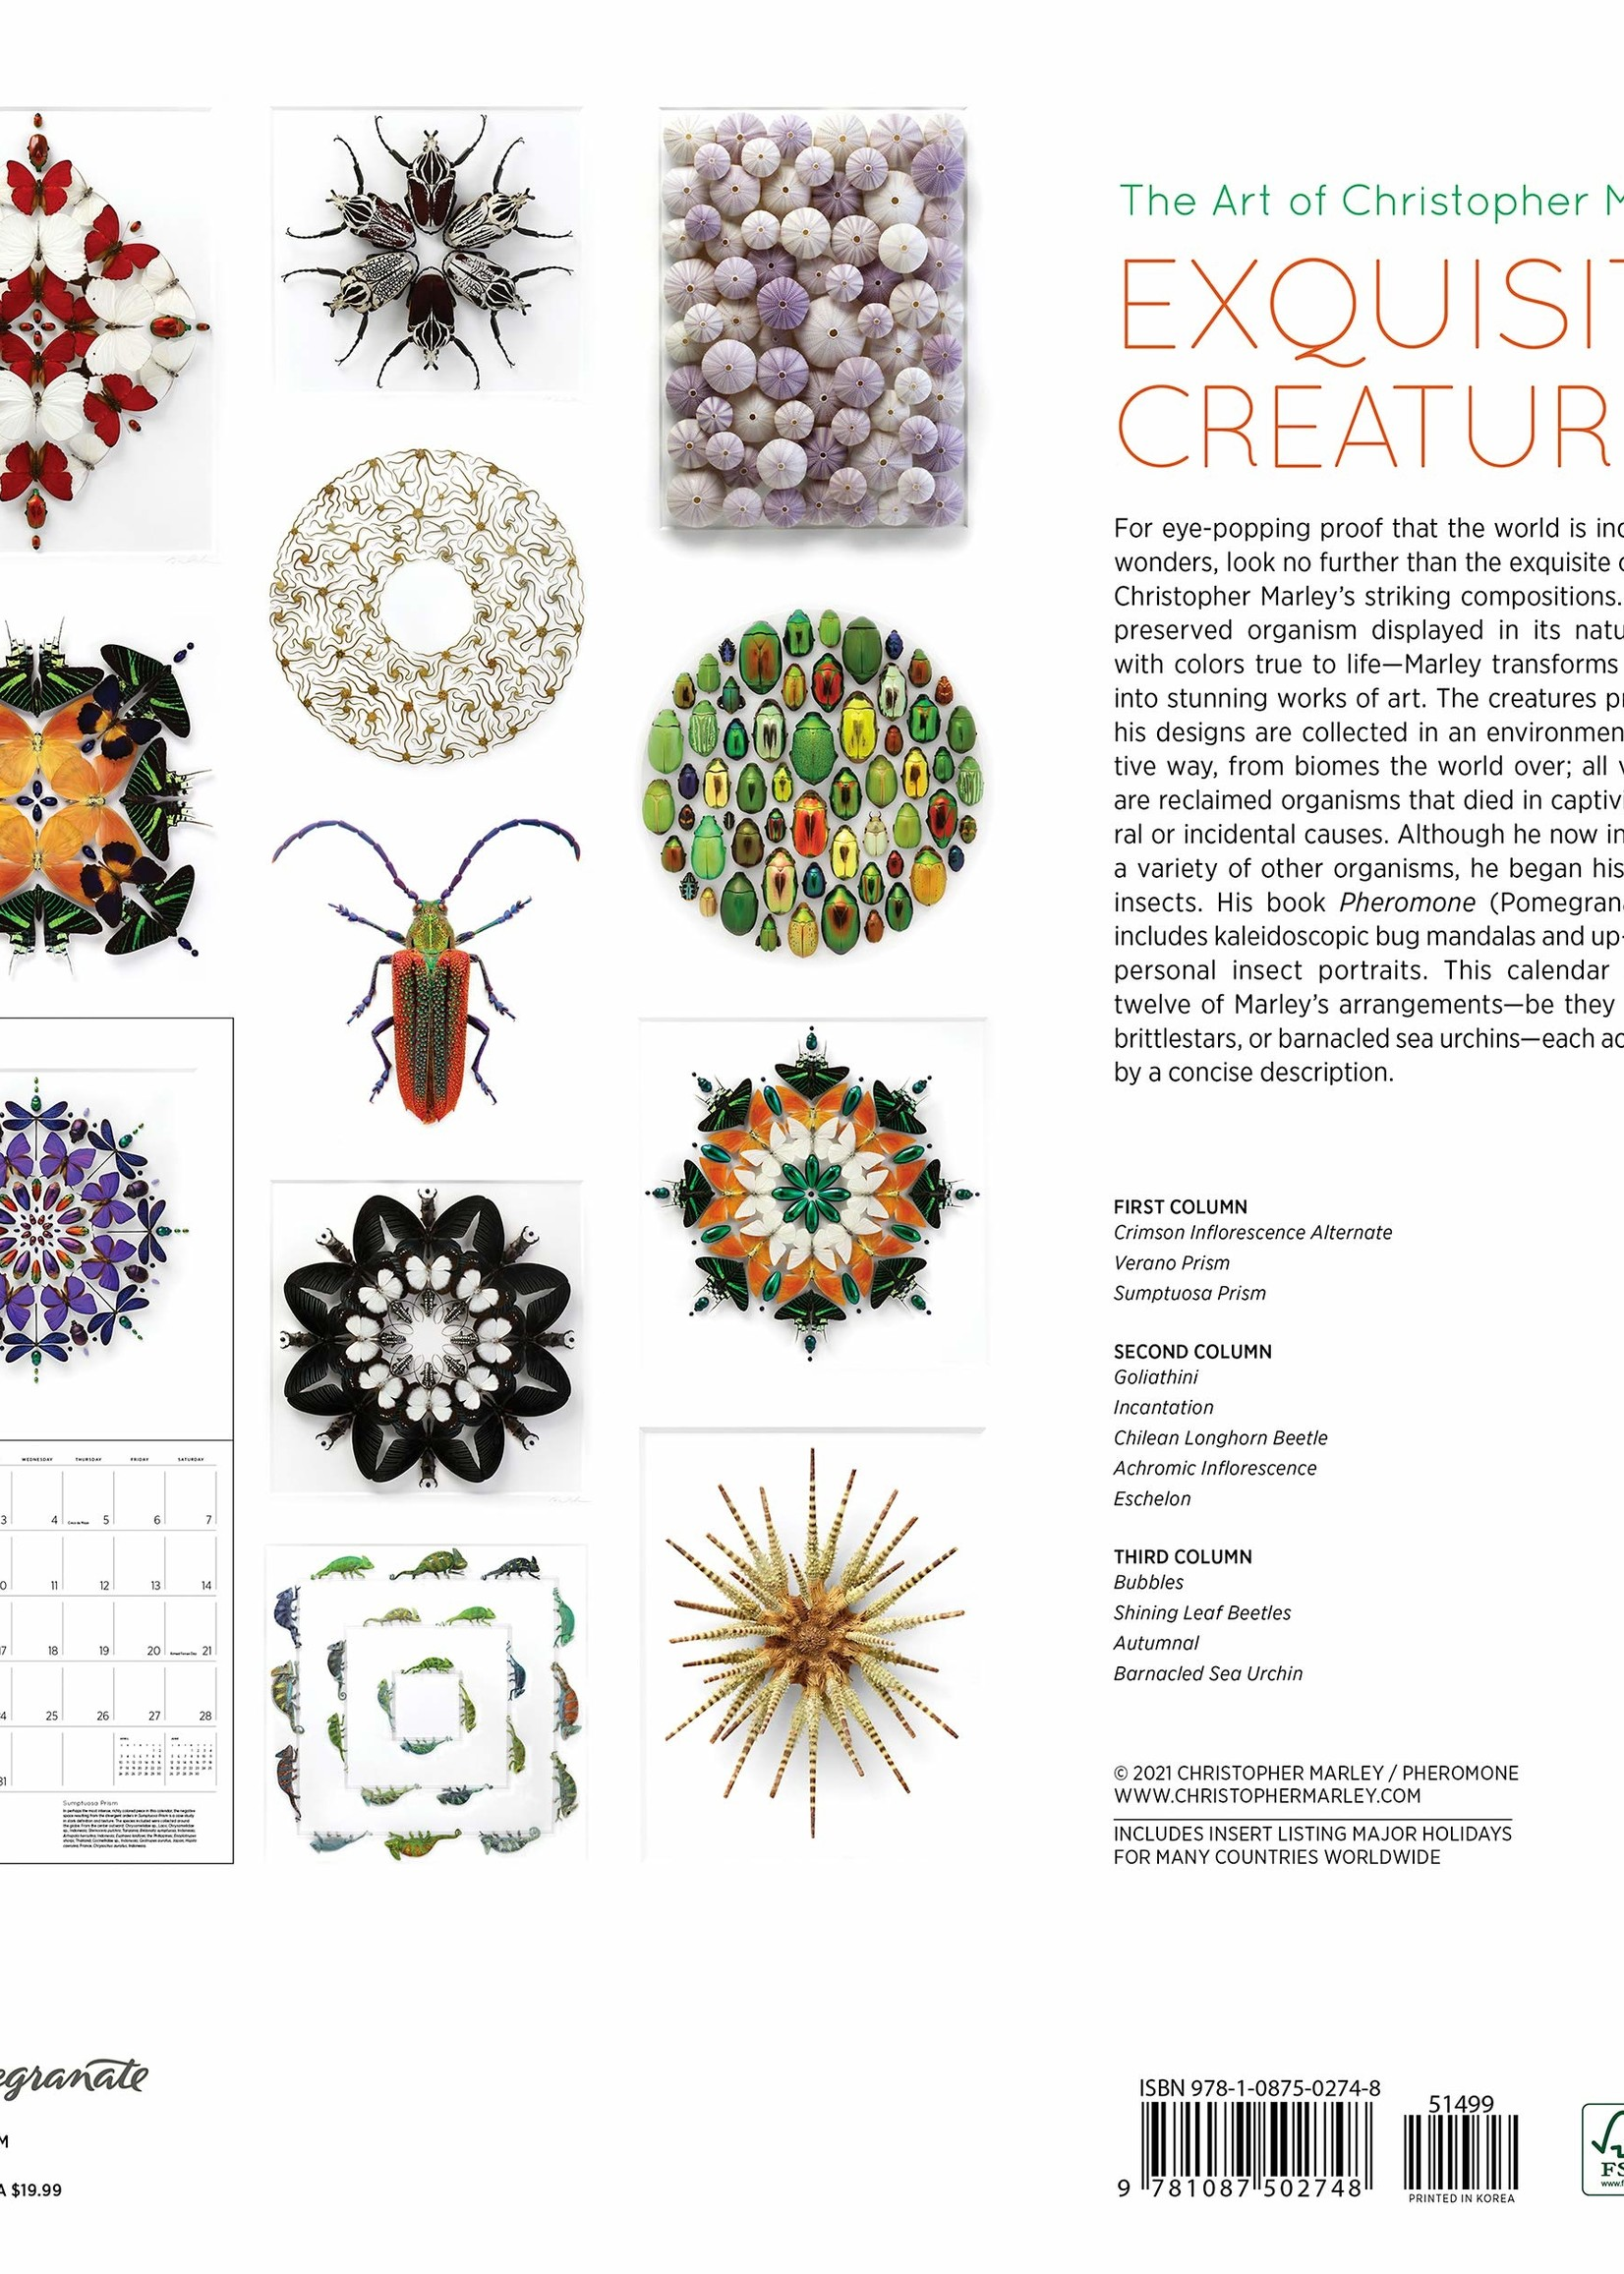 Cal 22 Exquisite Creatures Wall